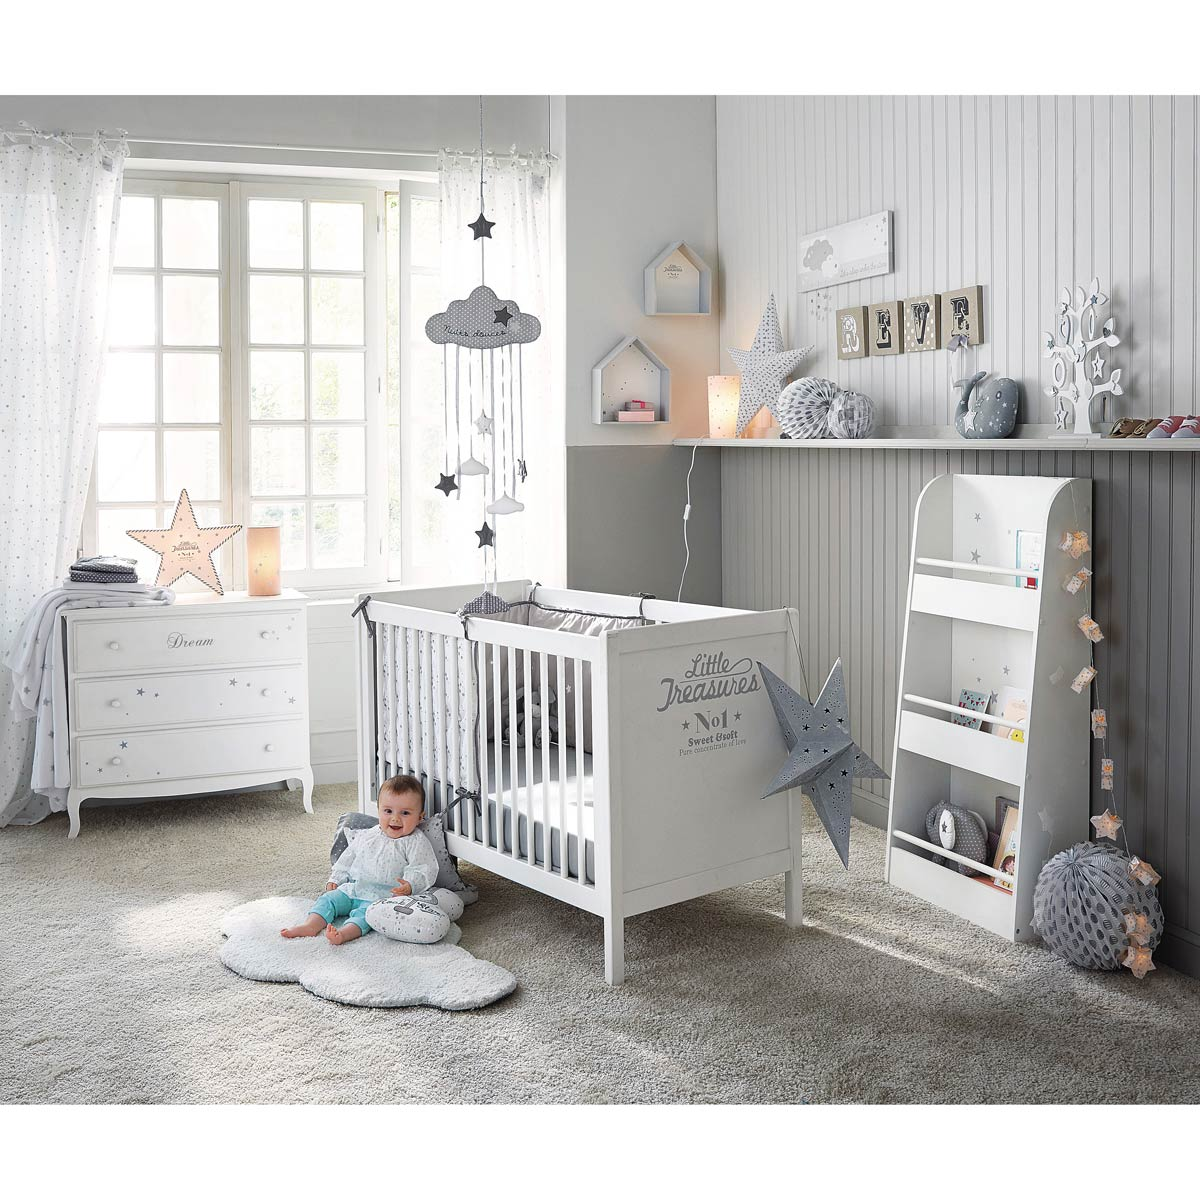 tapis chambre bebe nuage avec des id es. Black Bedroom Furniture Sets. Home Design Ideas